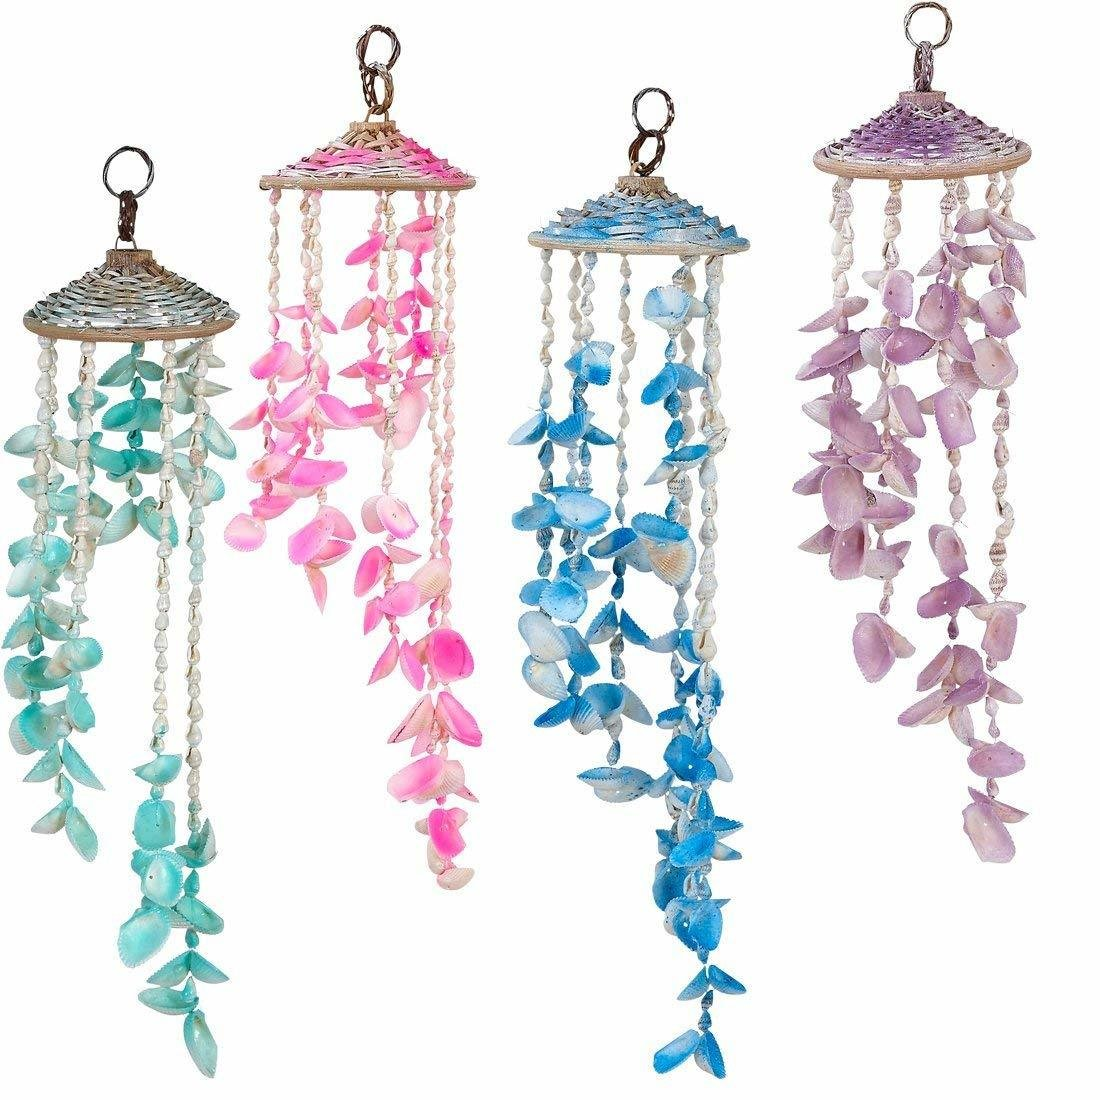 Rattan Hat Beach Shells Wind Chime Decorative Outdoor Seashells Windchime, Unique Tropical Wind Chimes 4W'*18L